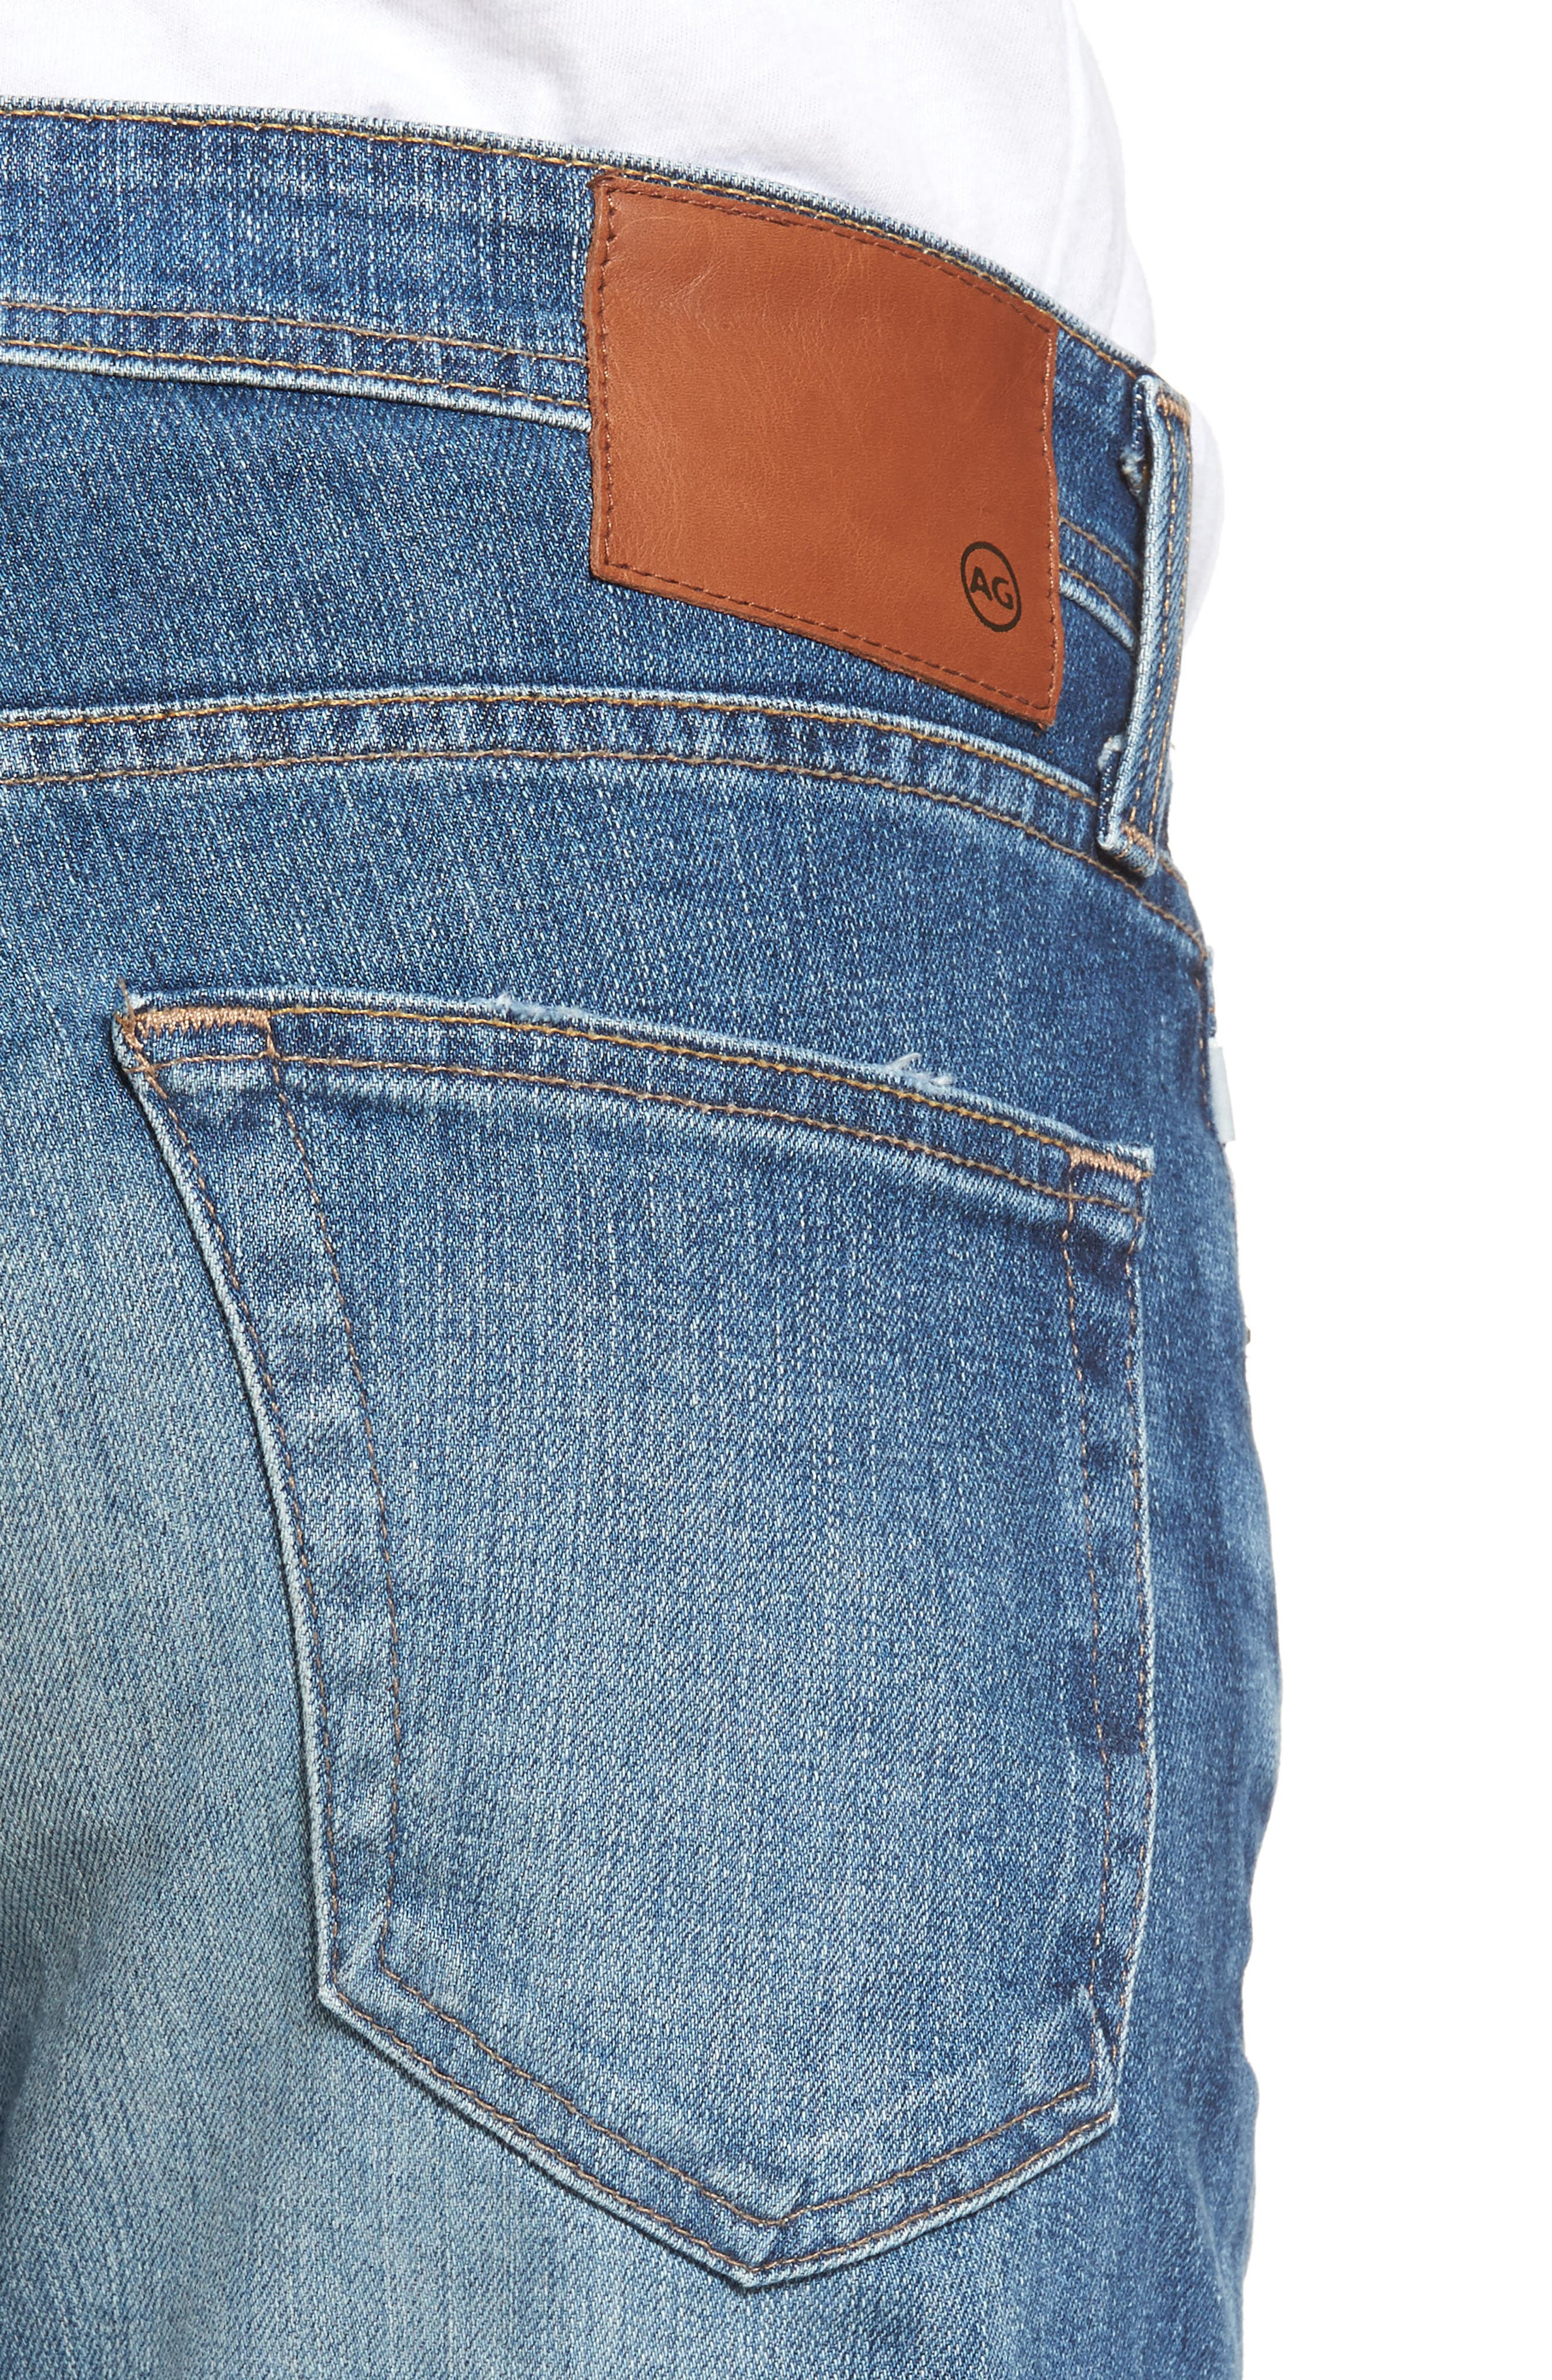 Alternate Image 4  - AG Jeans Stockton Skinny Fit Jeans (16 Years Rave)